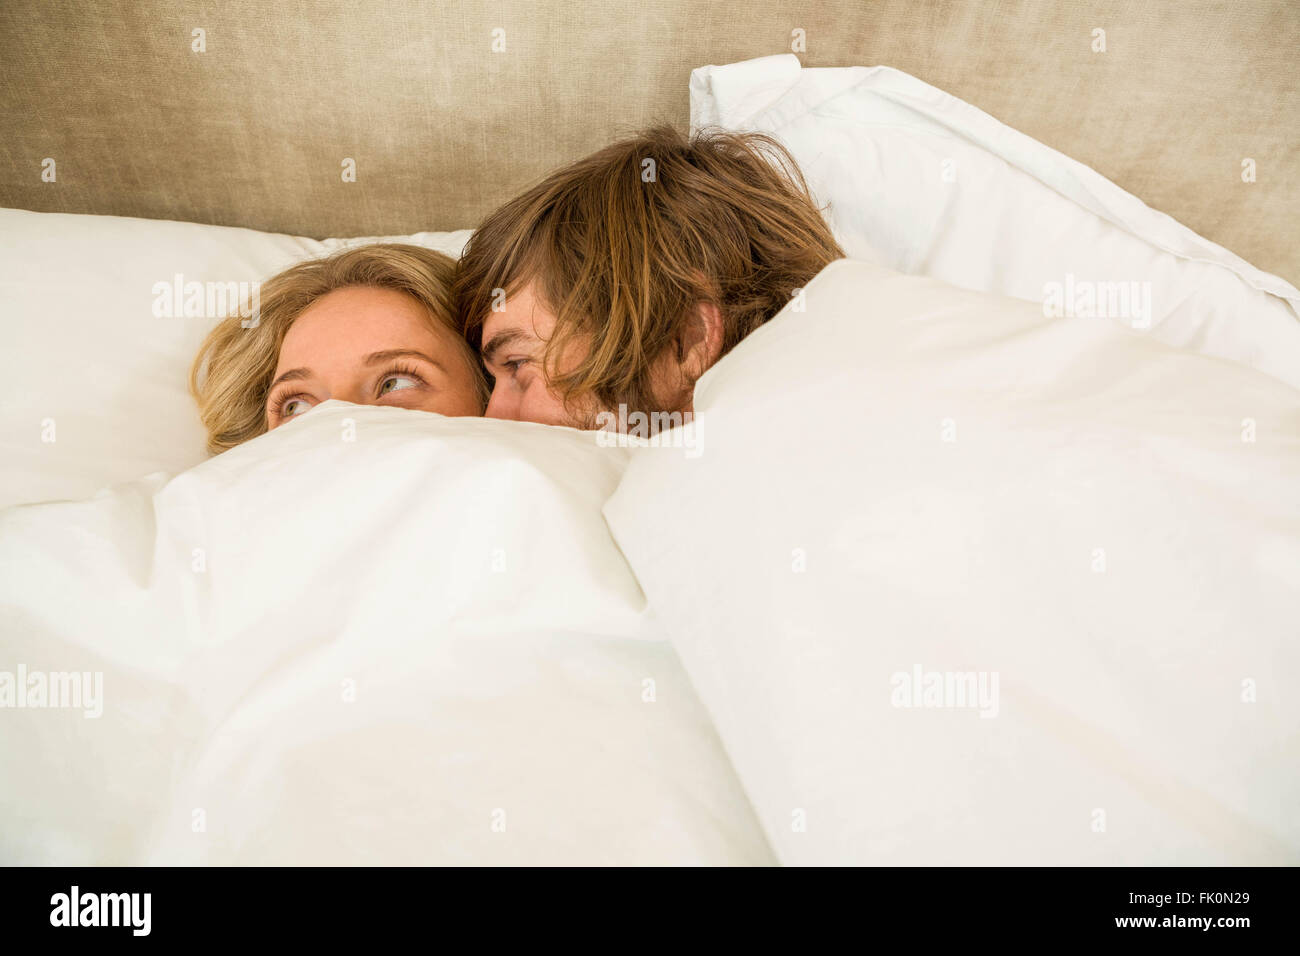 Cute Couple Cuddling Under The Blanket